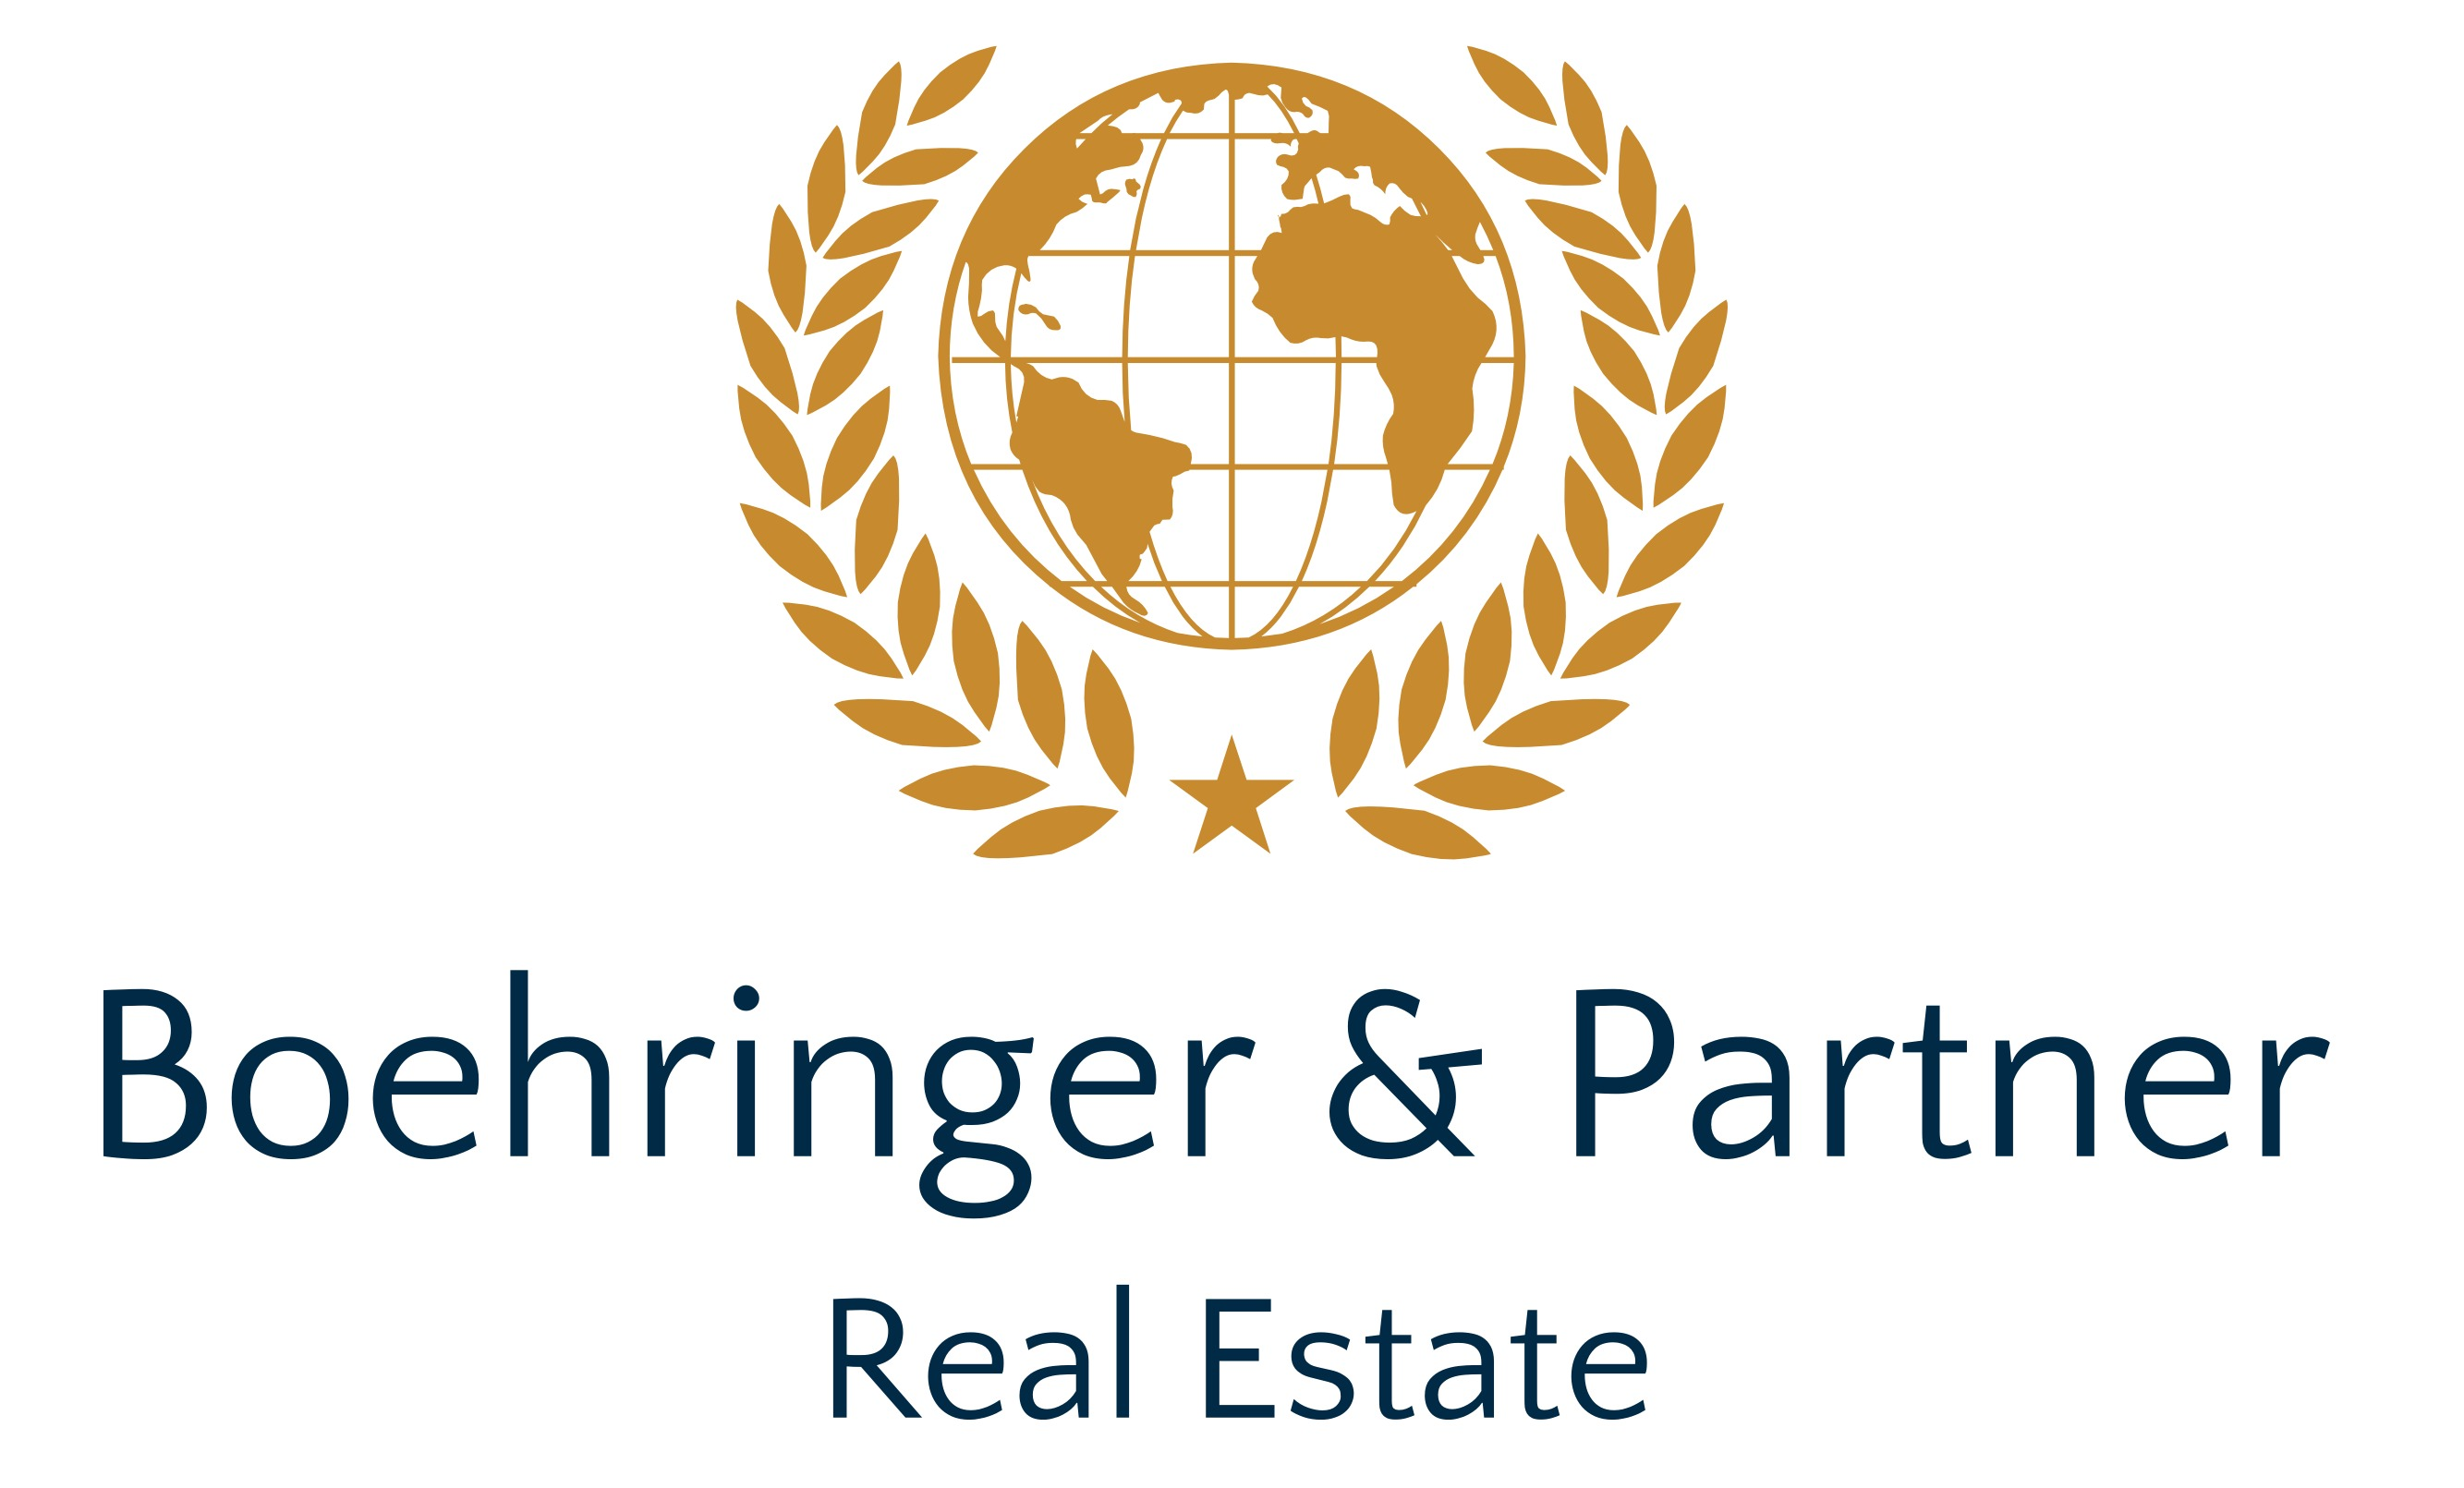 Boehringer & Partner Real Estate